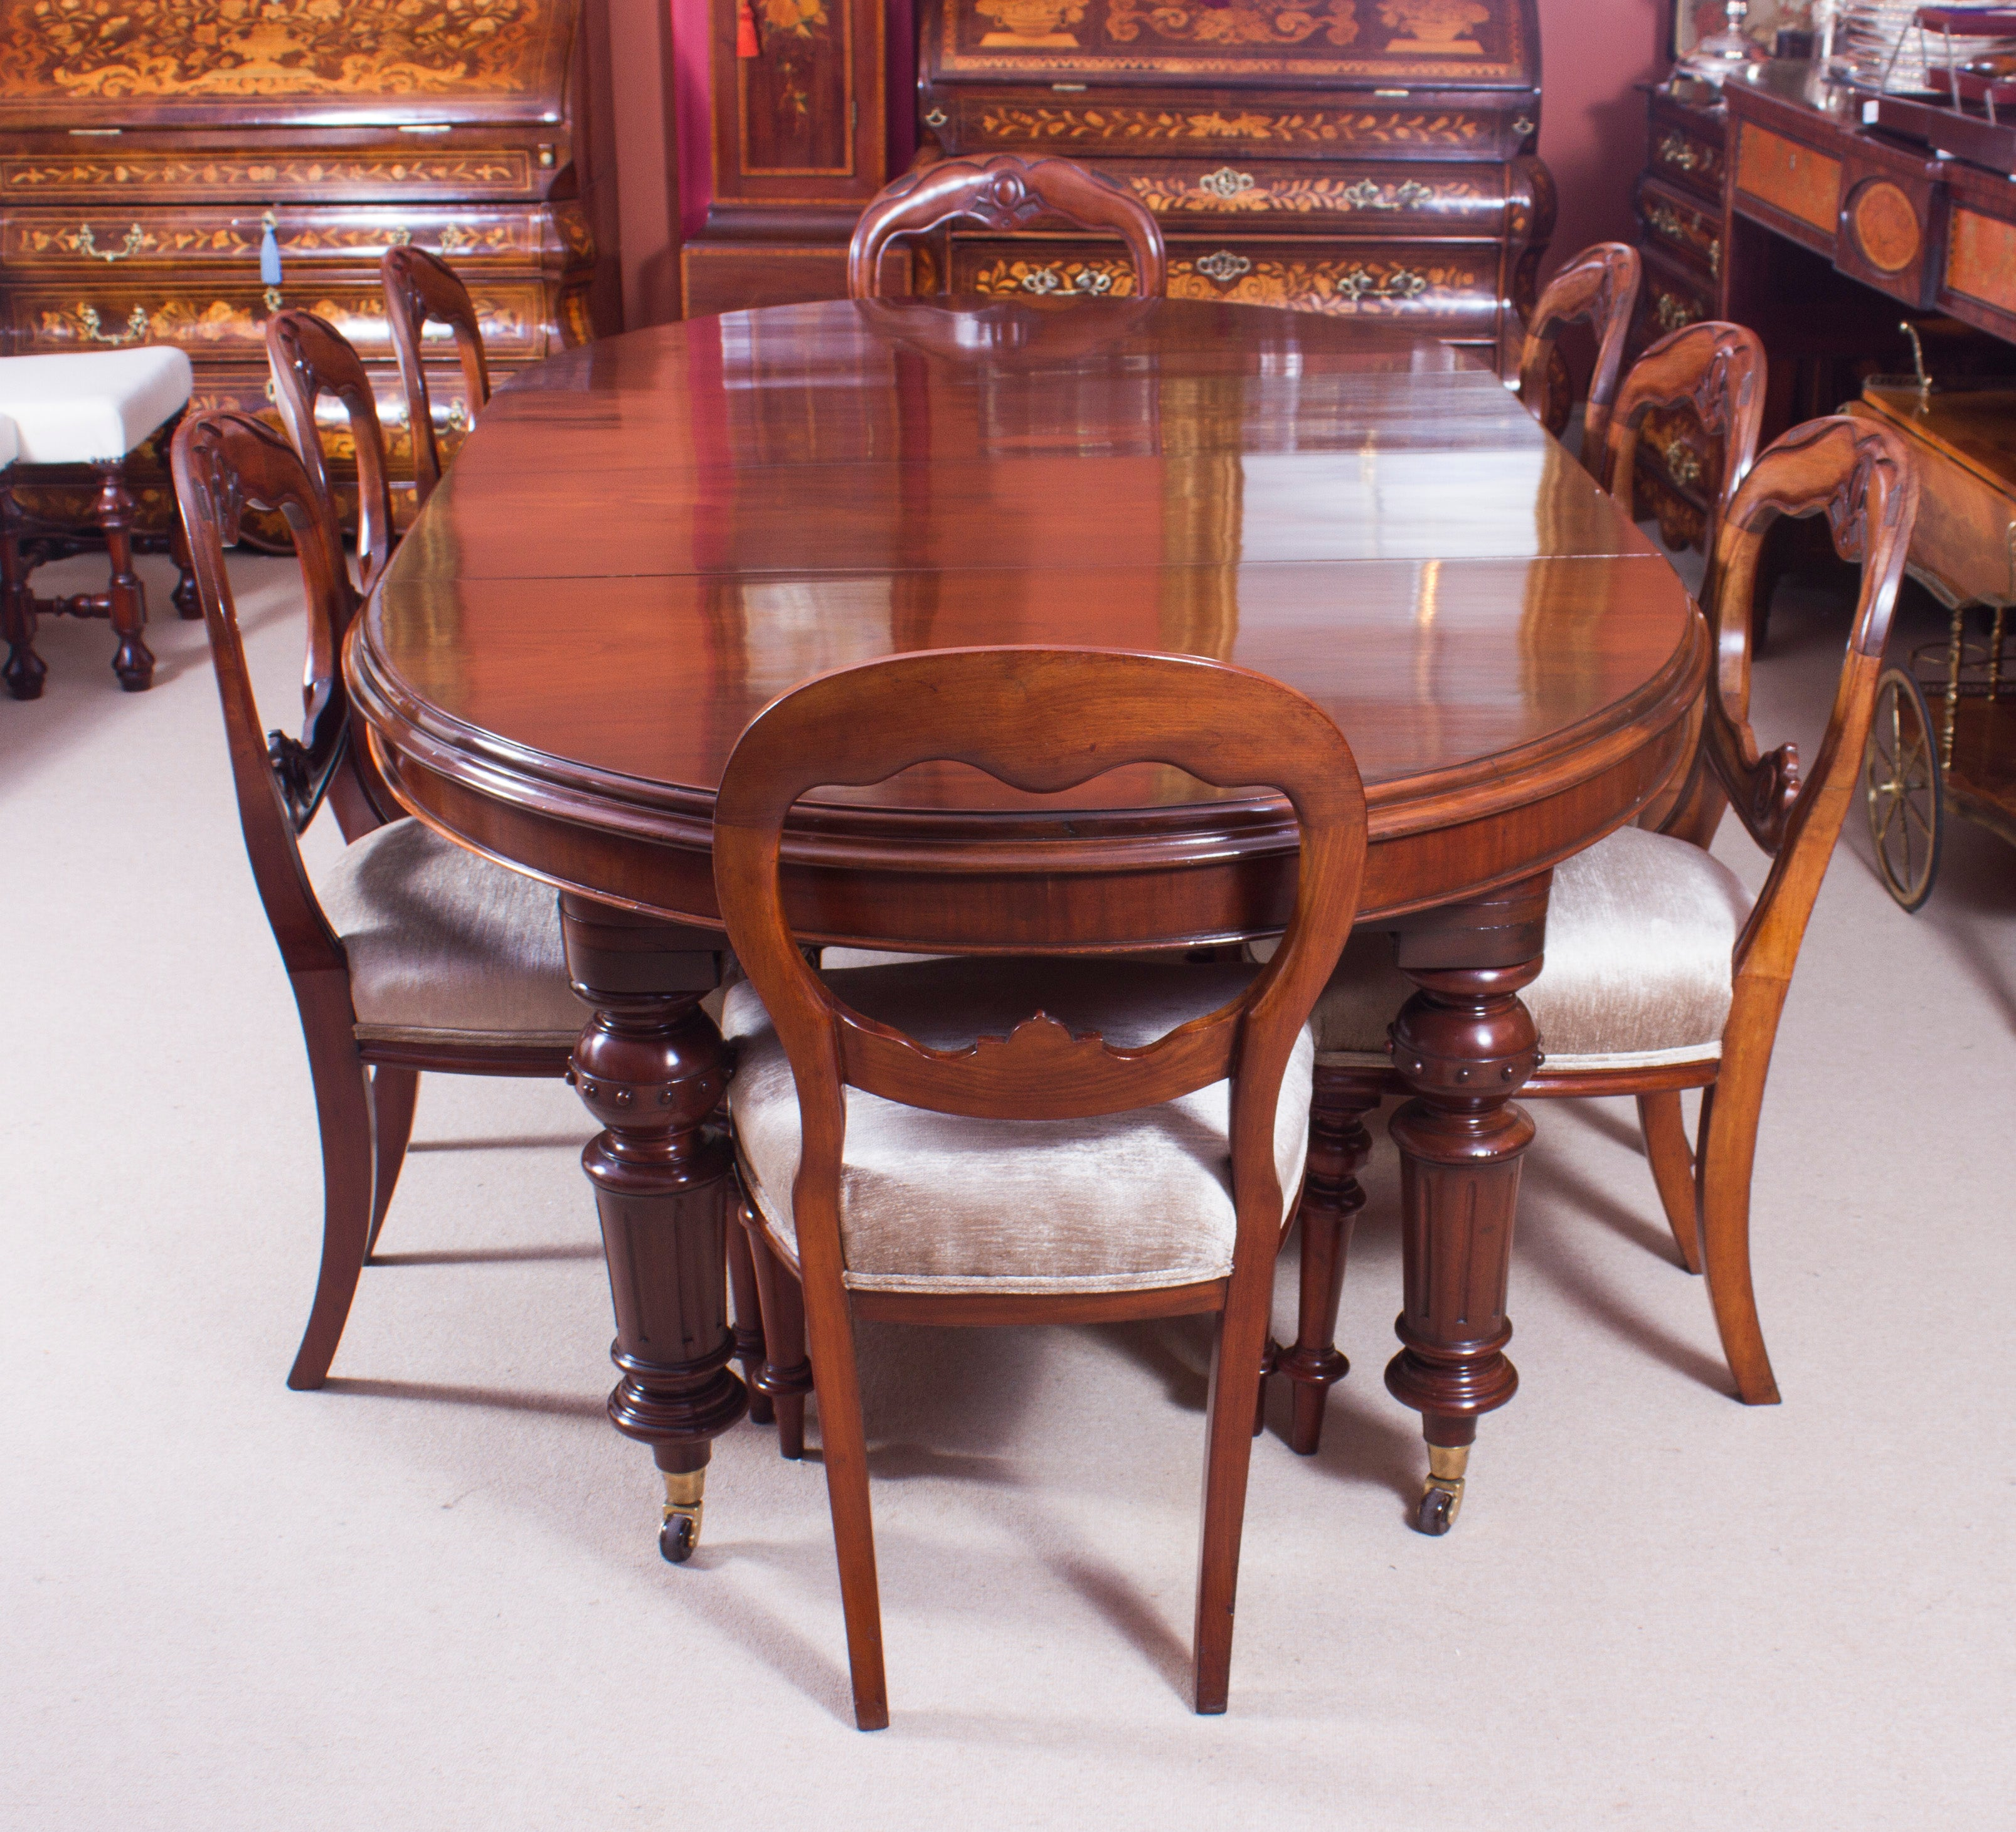 19th Century Victorian Oval Extending Dining Table